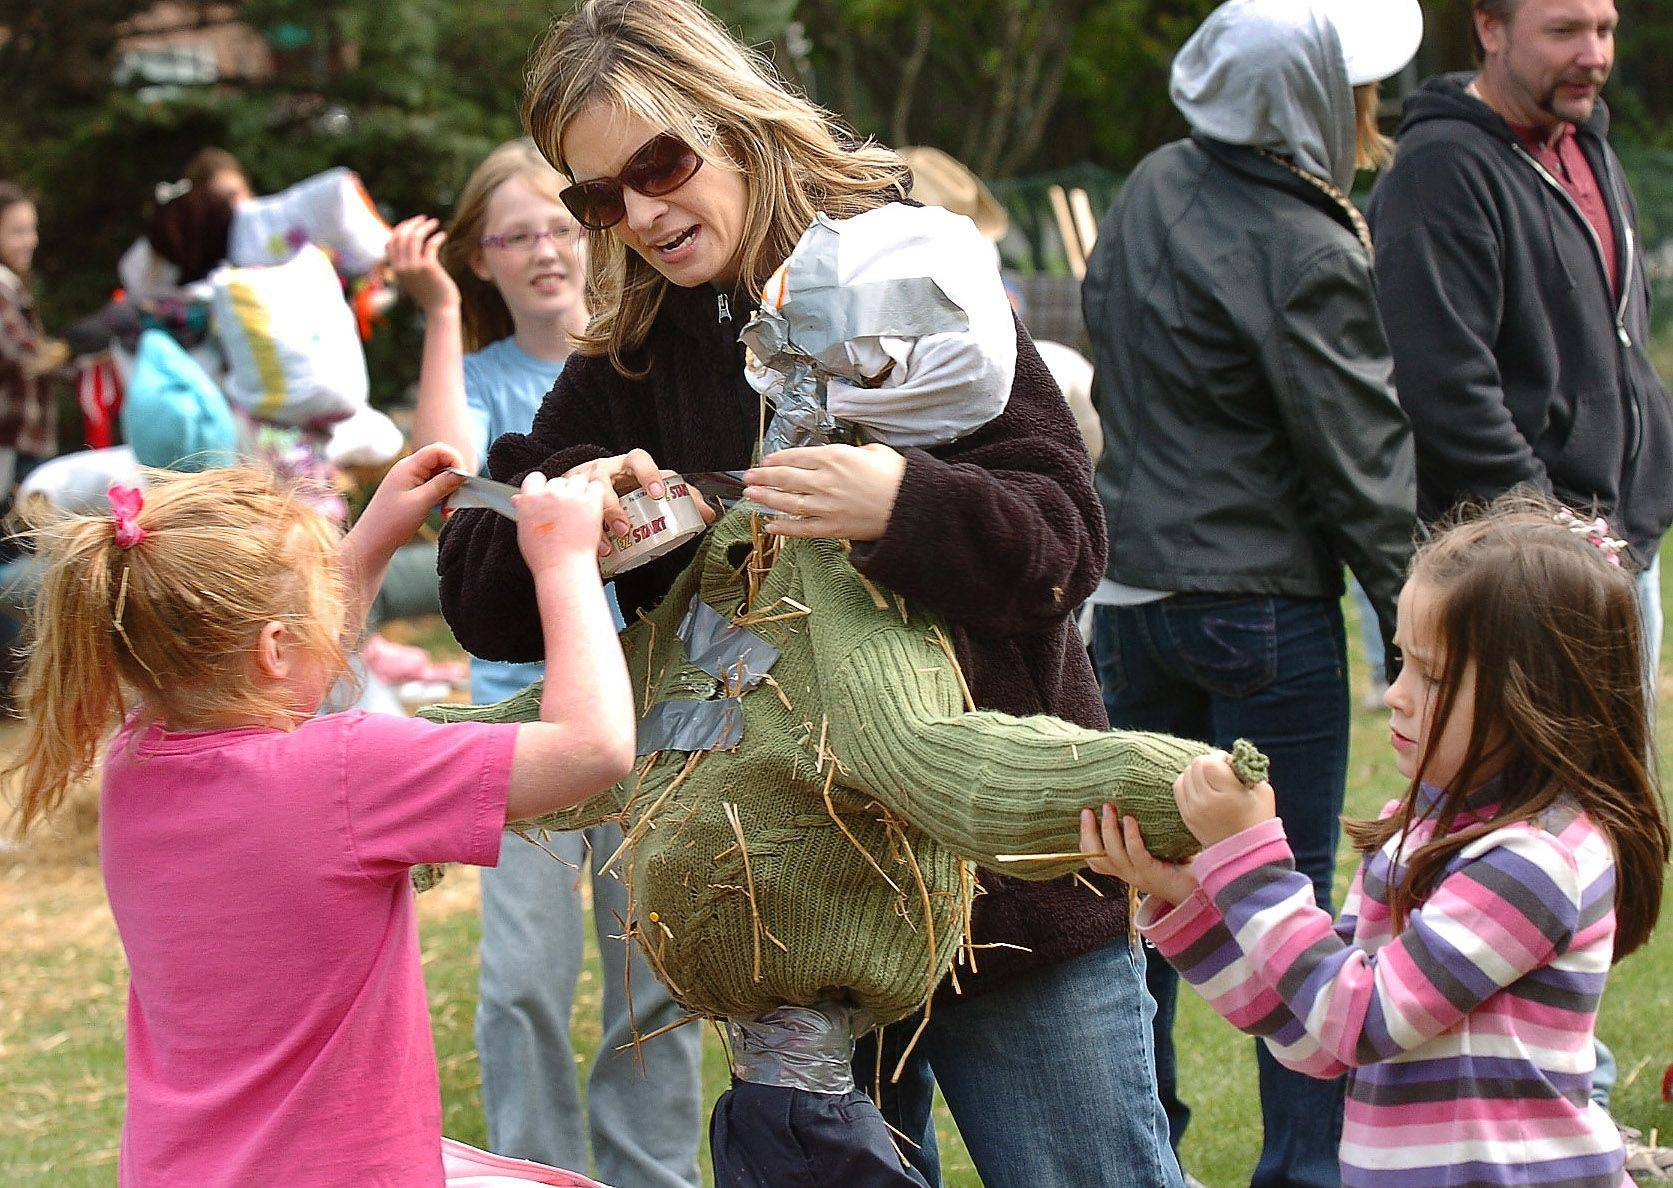 Erin Trunda, middle, works on a scarecrow for the scarecrow competition with Rebecca Caliendo, left, and Katie Trunda during the Arlington Heights Autumn Harvest.